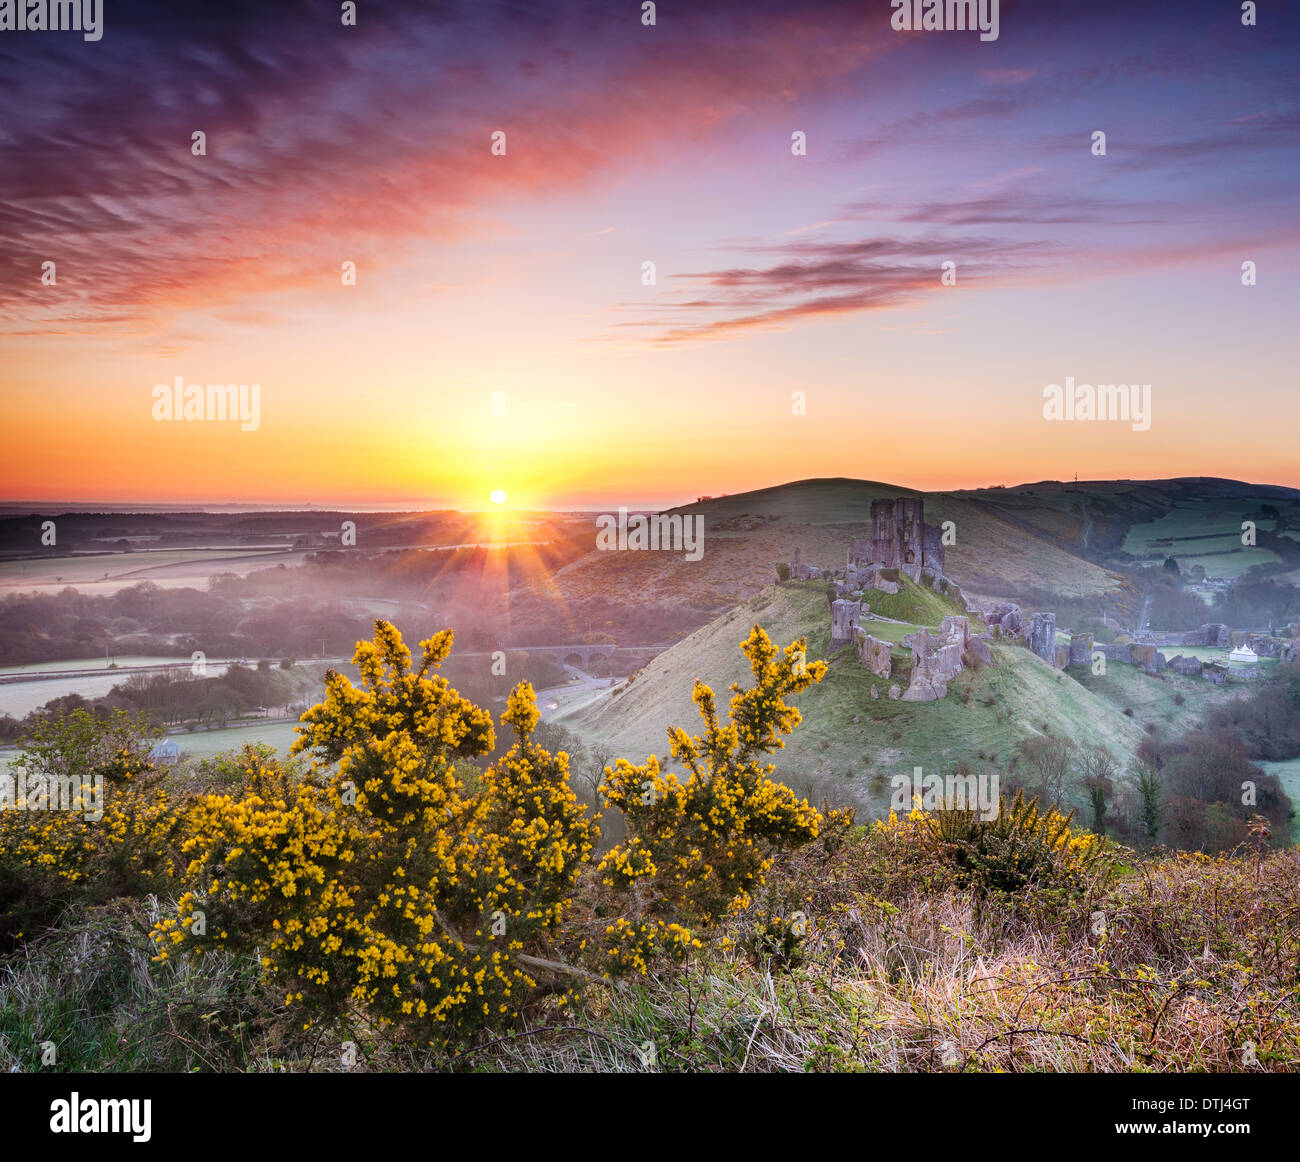 A frosty April sunrise overlooking the ruins of Corfe Castle on the Isle of Purbeck in Dorset - Stock Image